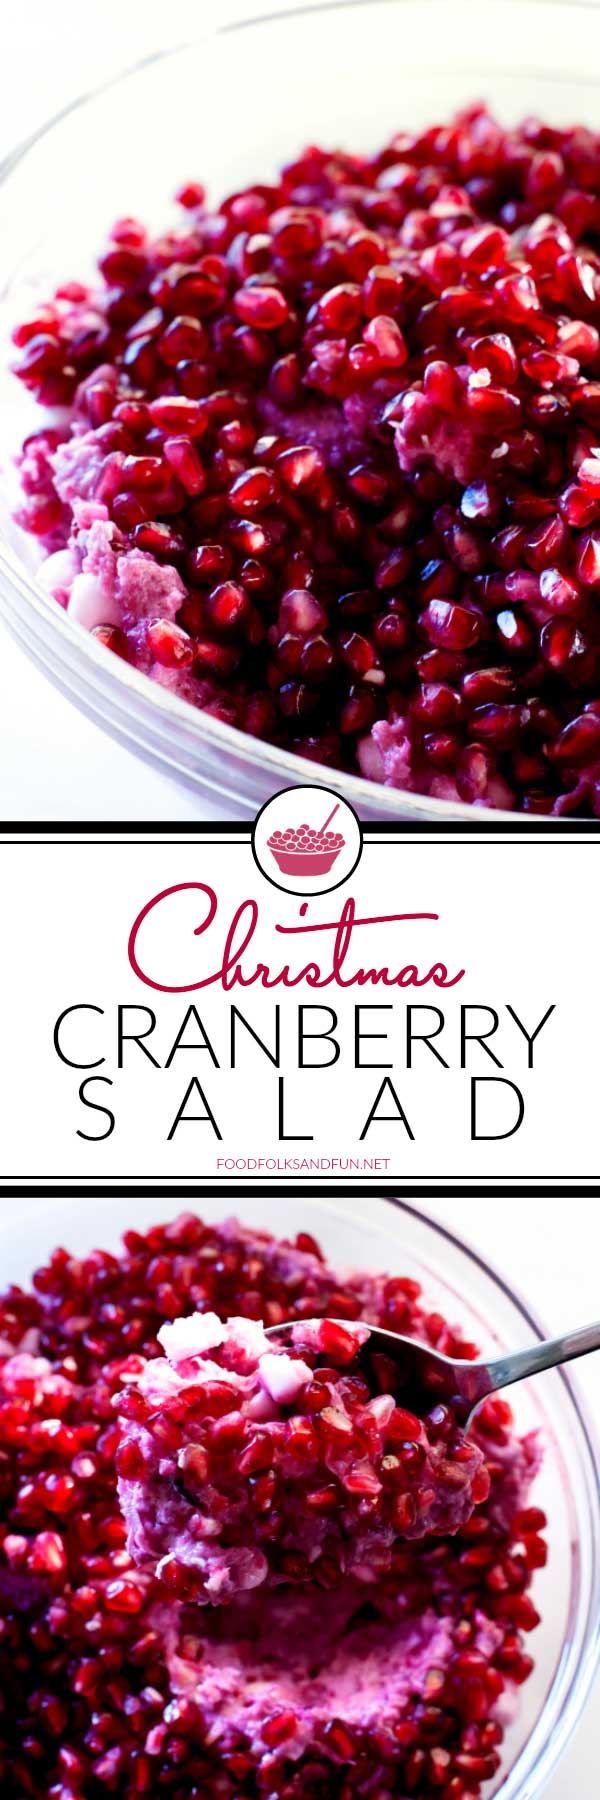 This Christmas Cranberry Fluff Salad is simply the best. It's loaded with tart cranberries, whipped cream, pineapple, coconut, marshmallows, and pomegranate seeds. via @foodfolksandfun